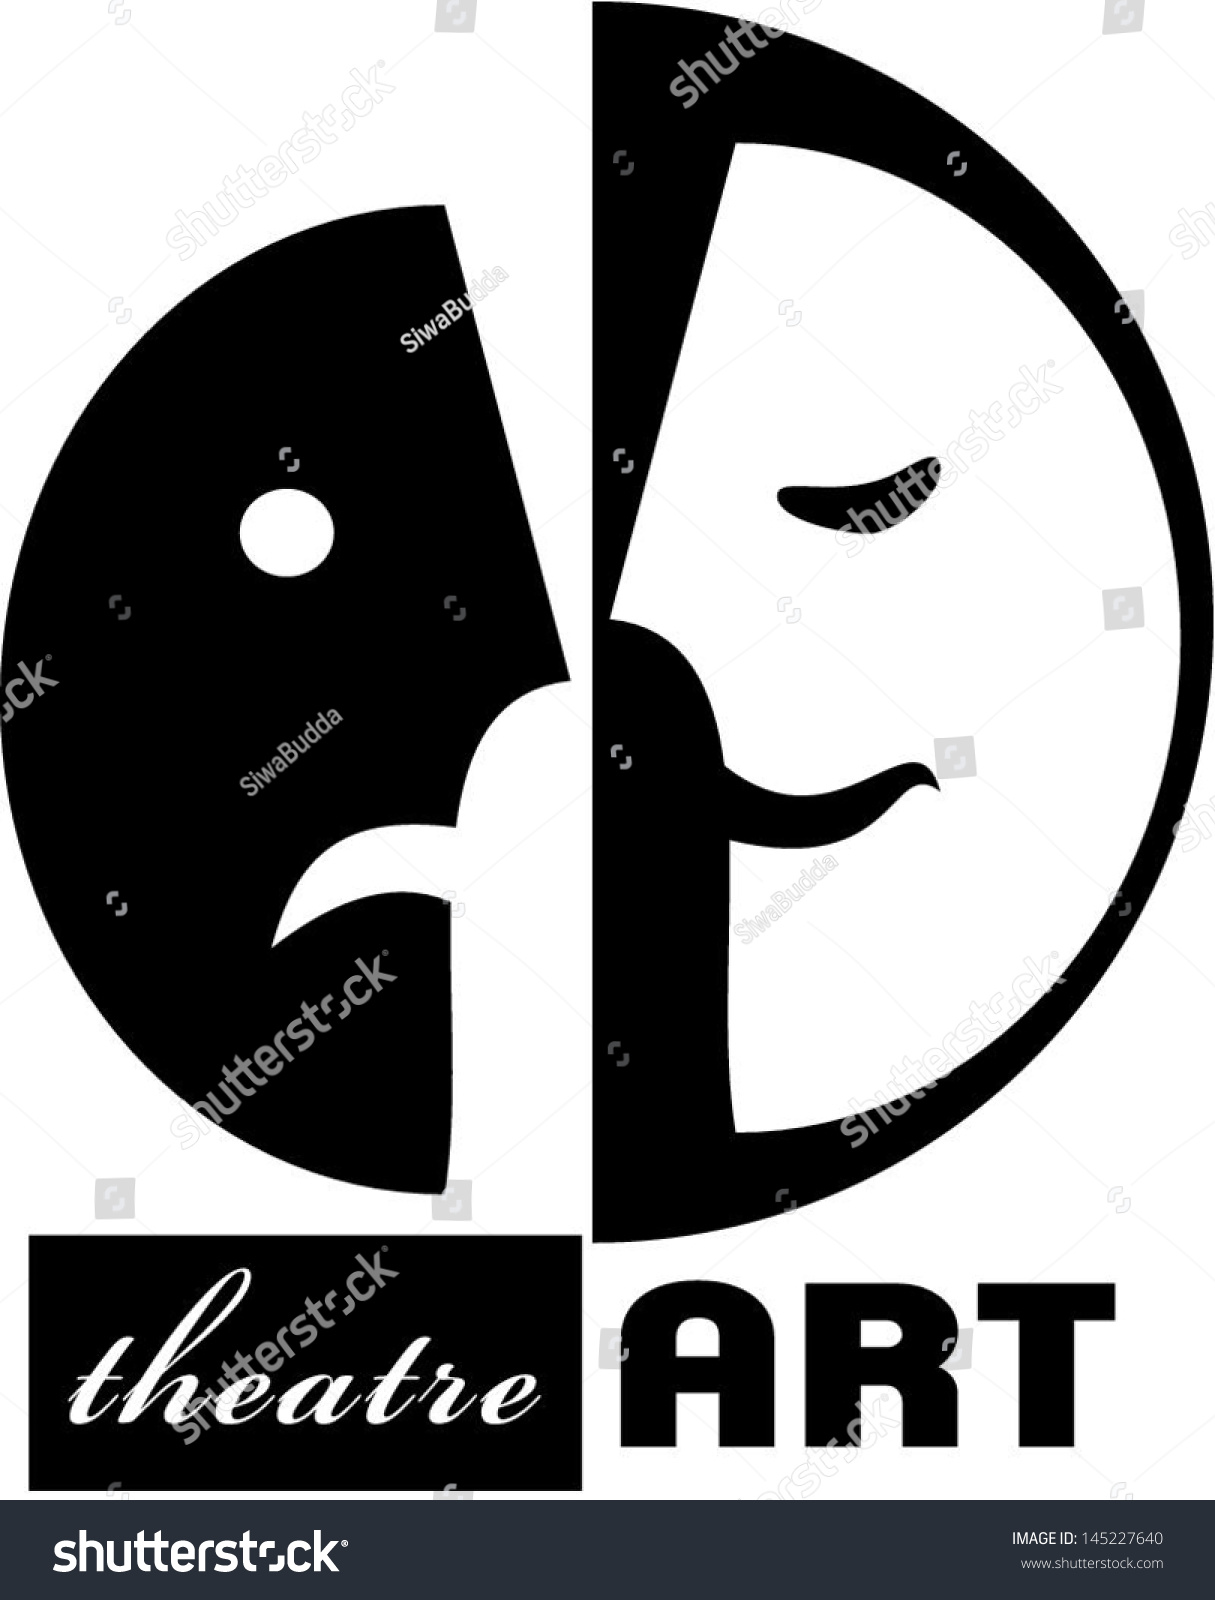 Theater Poster Template In Simple Classic Style With Happy And Sad Mask Presents Inner Conflict